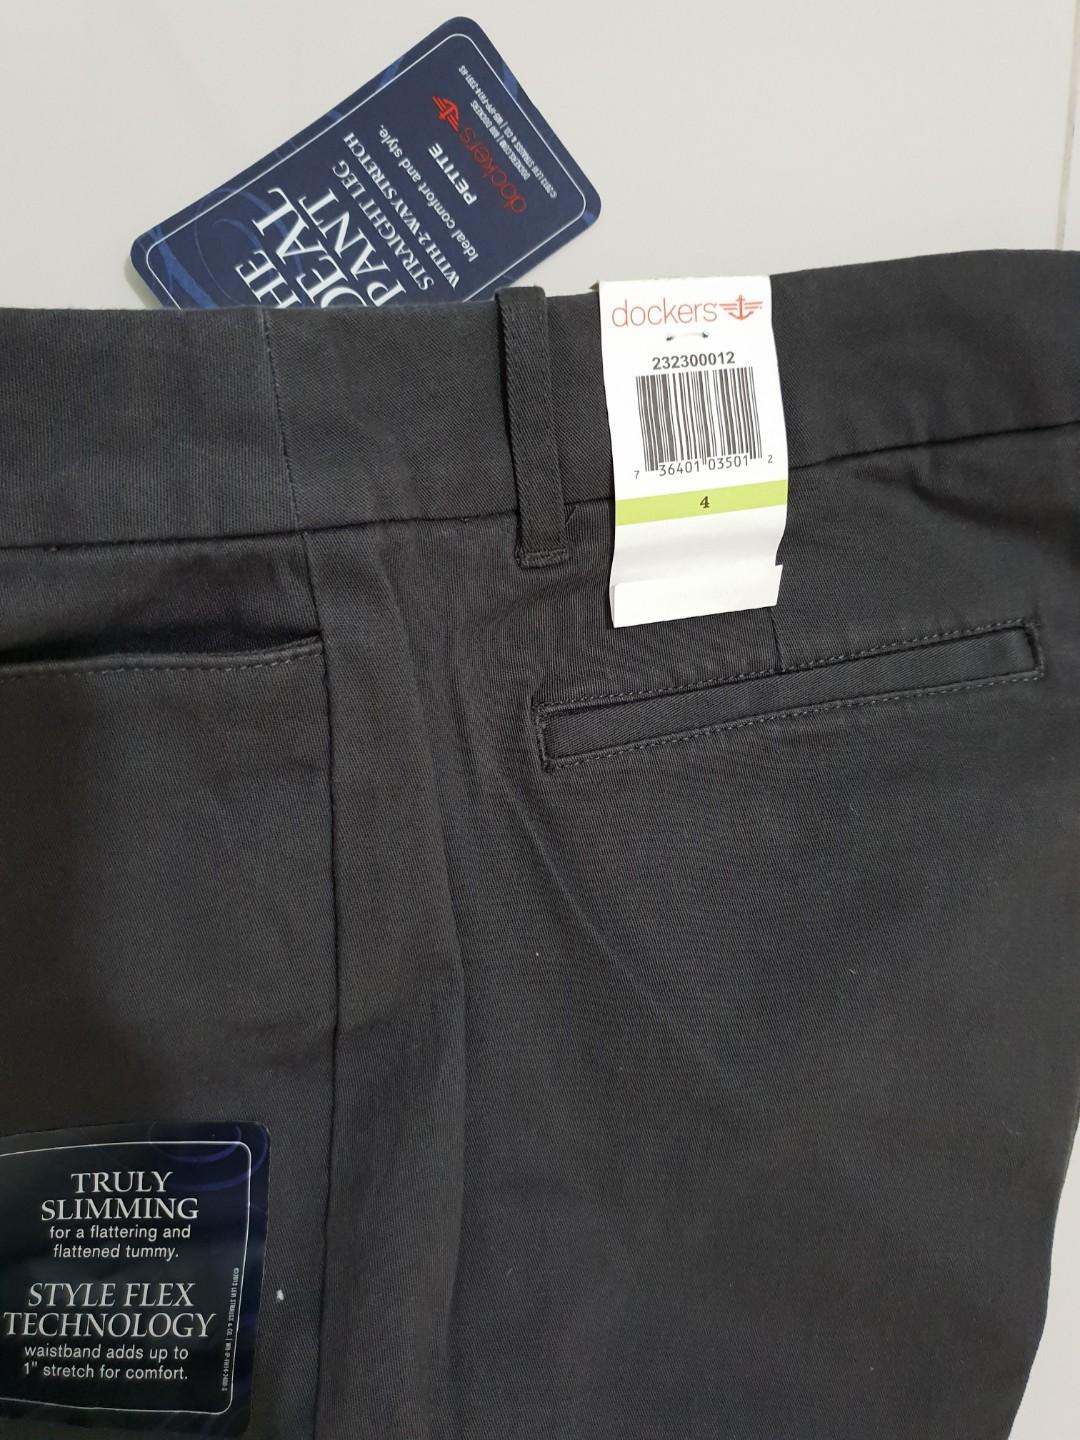 Dockers Pants (Brand New With Tag)